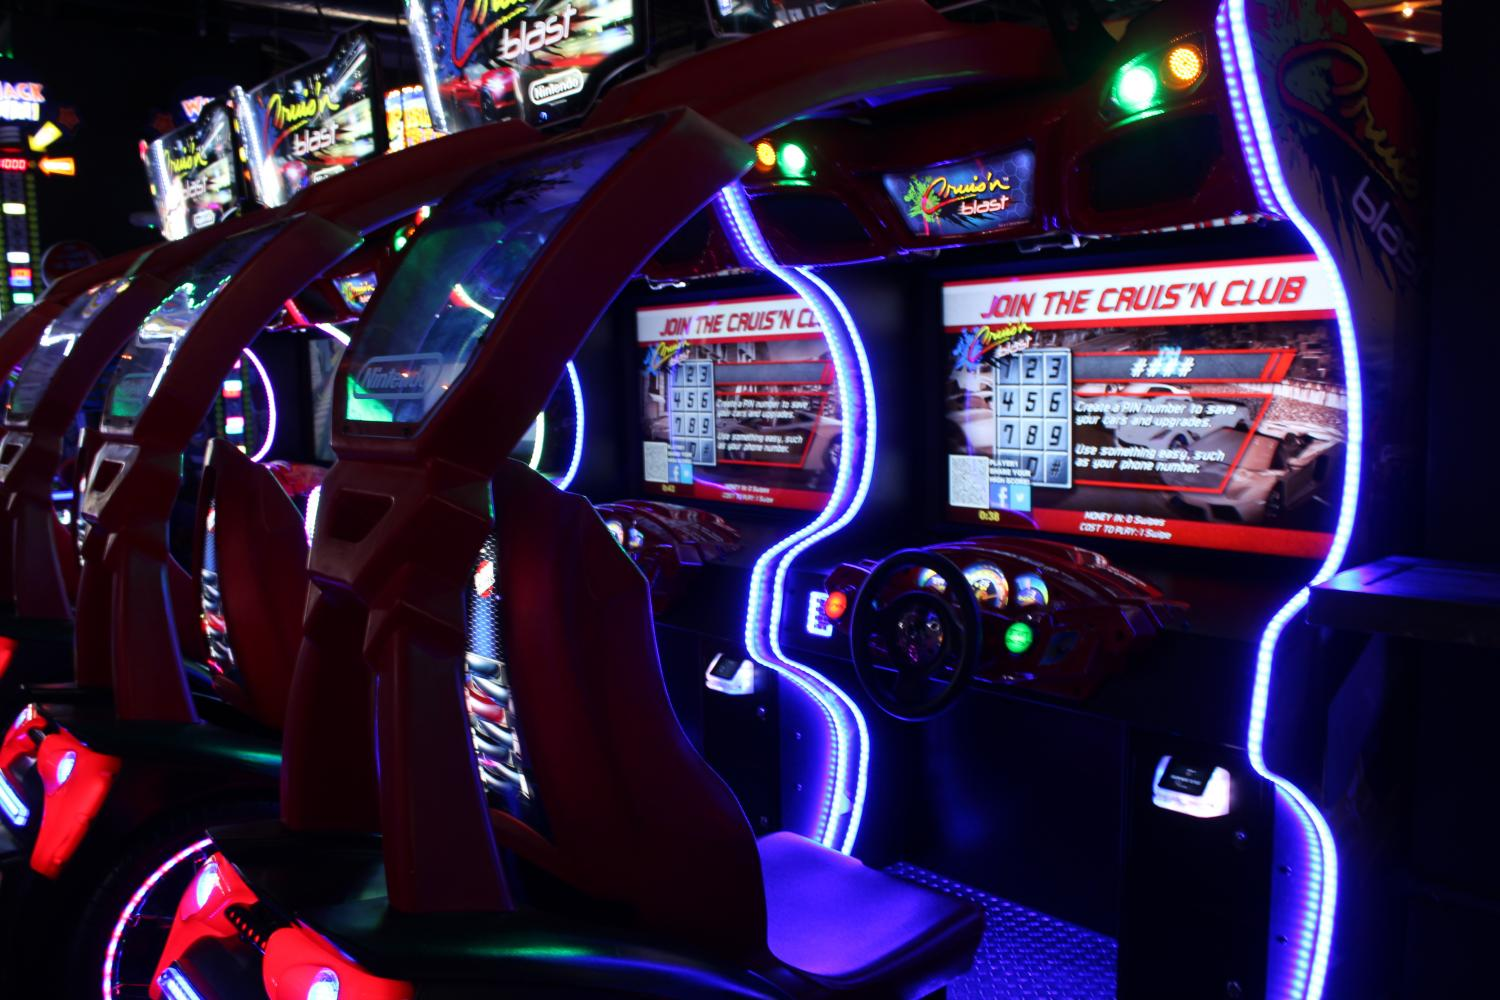 Setup+of+one+of+the+car+race+games+at+Lucky+Strike.